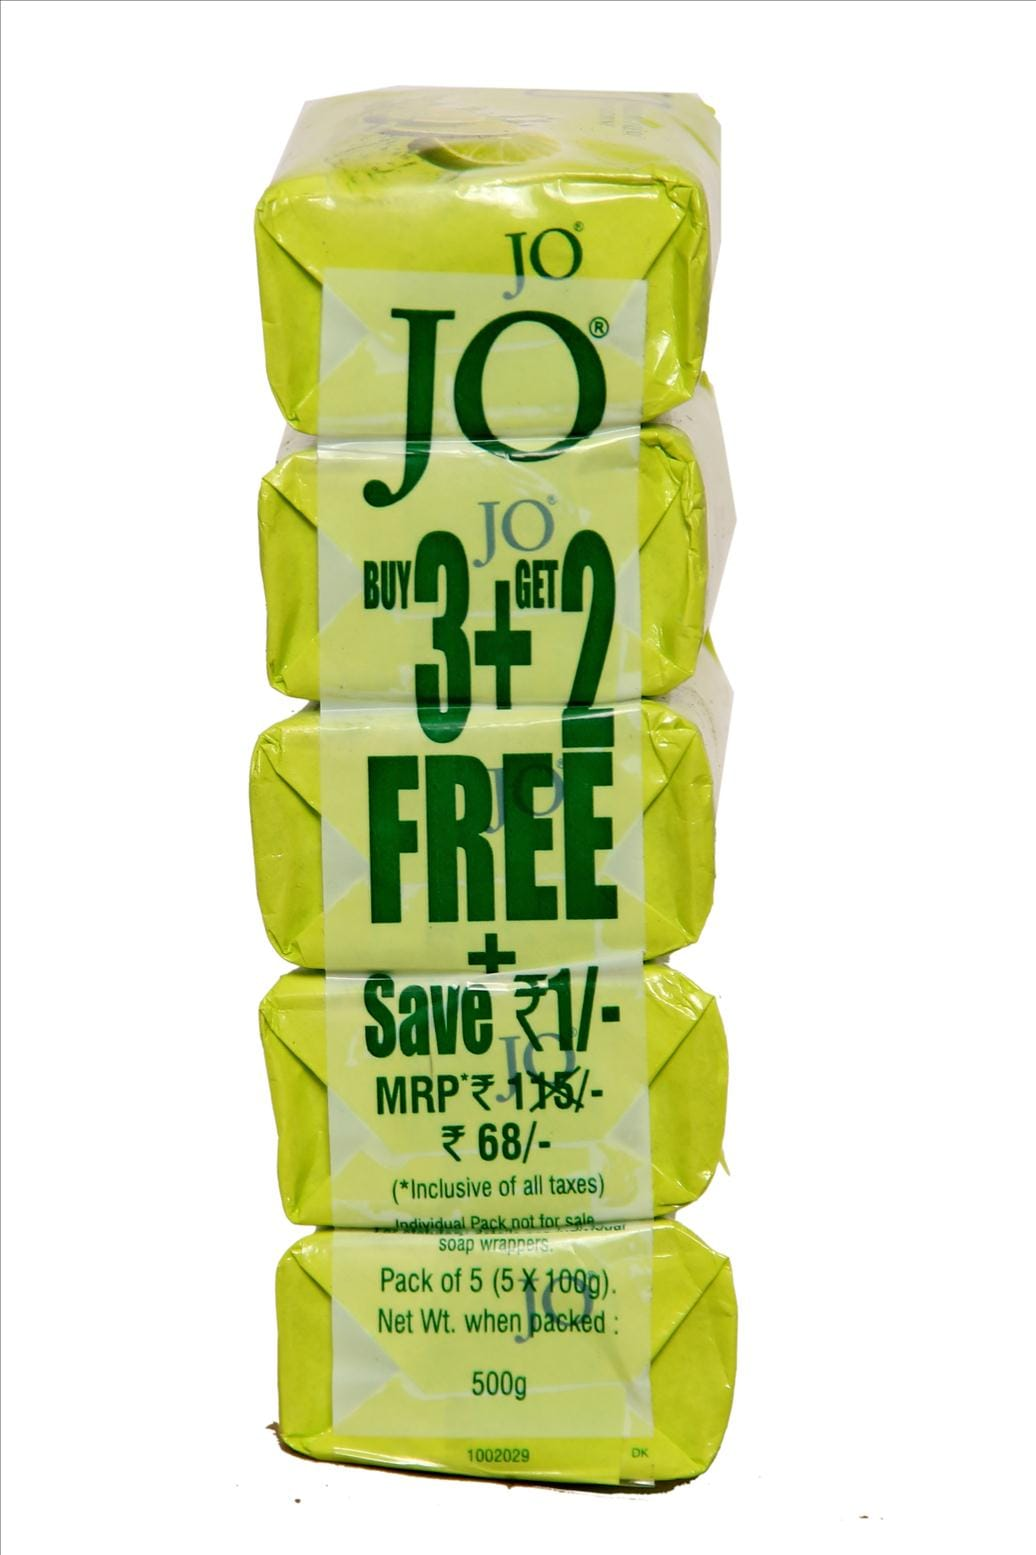 Jo Sparkling Fresh Lime Bathing Soap Buy 3 Get 2 Free